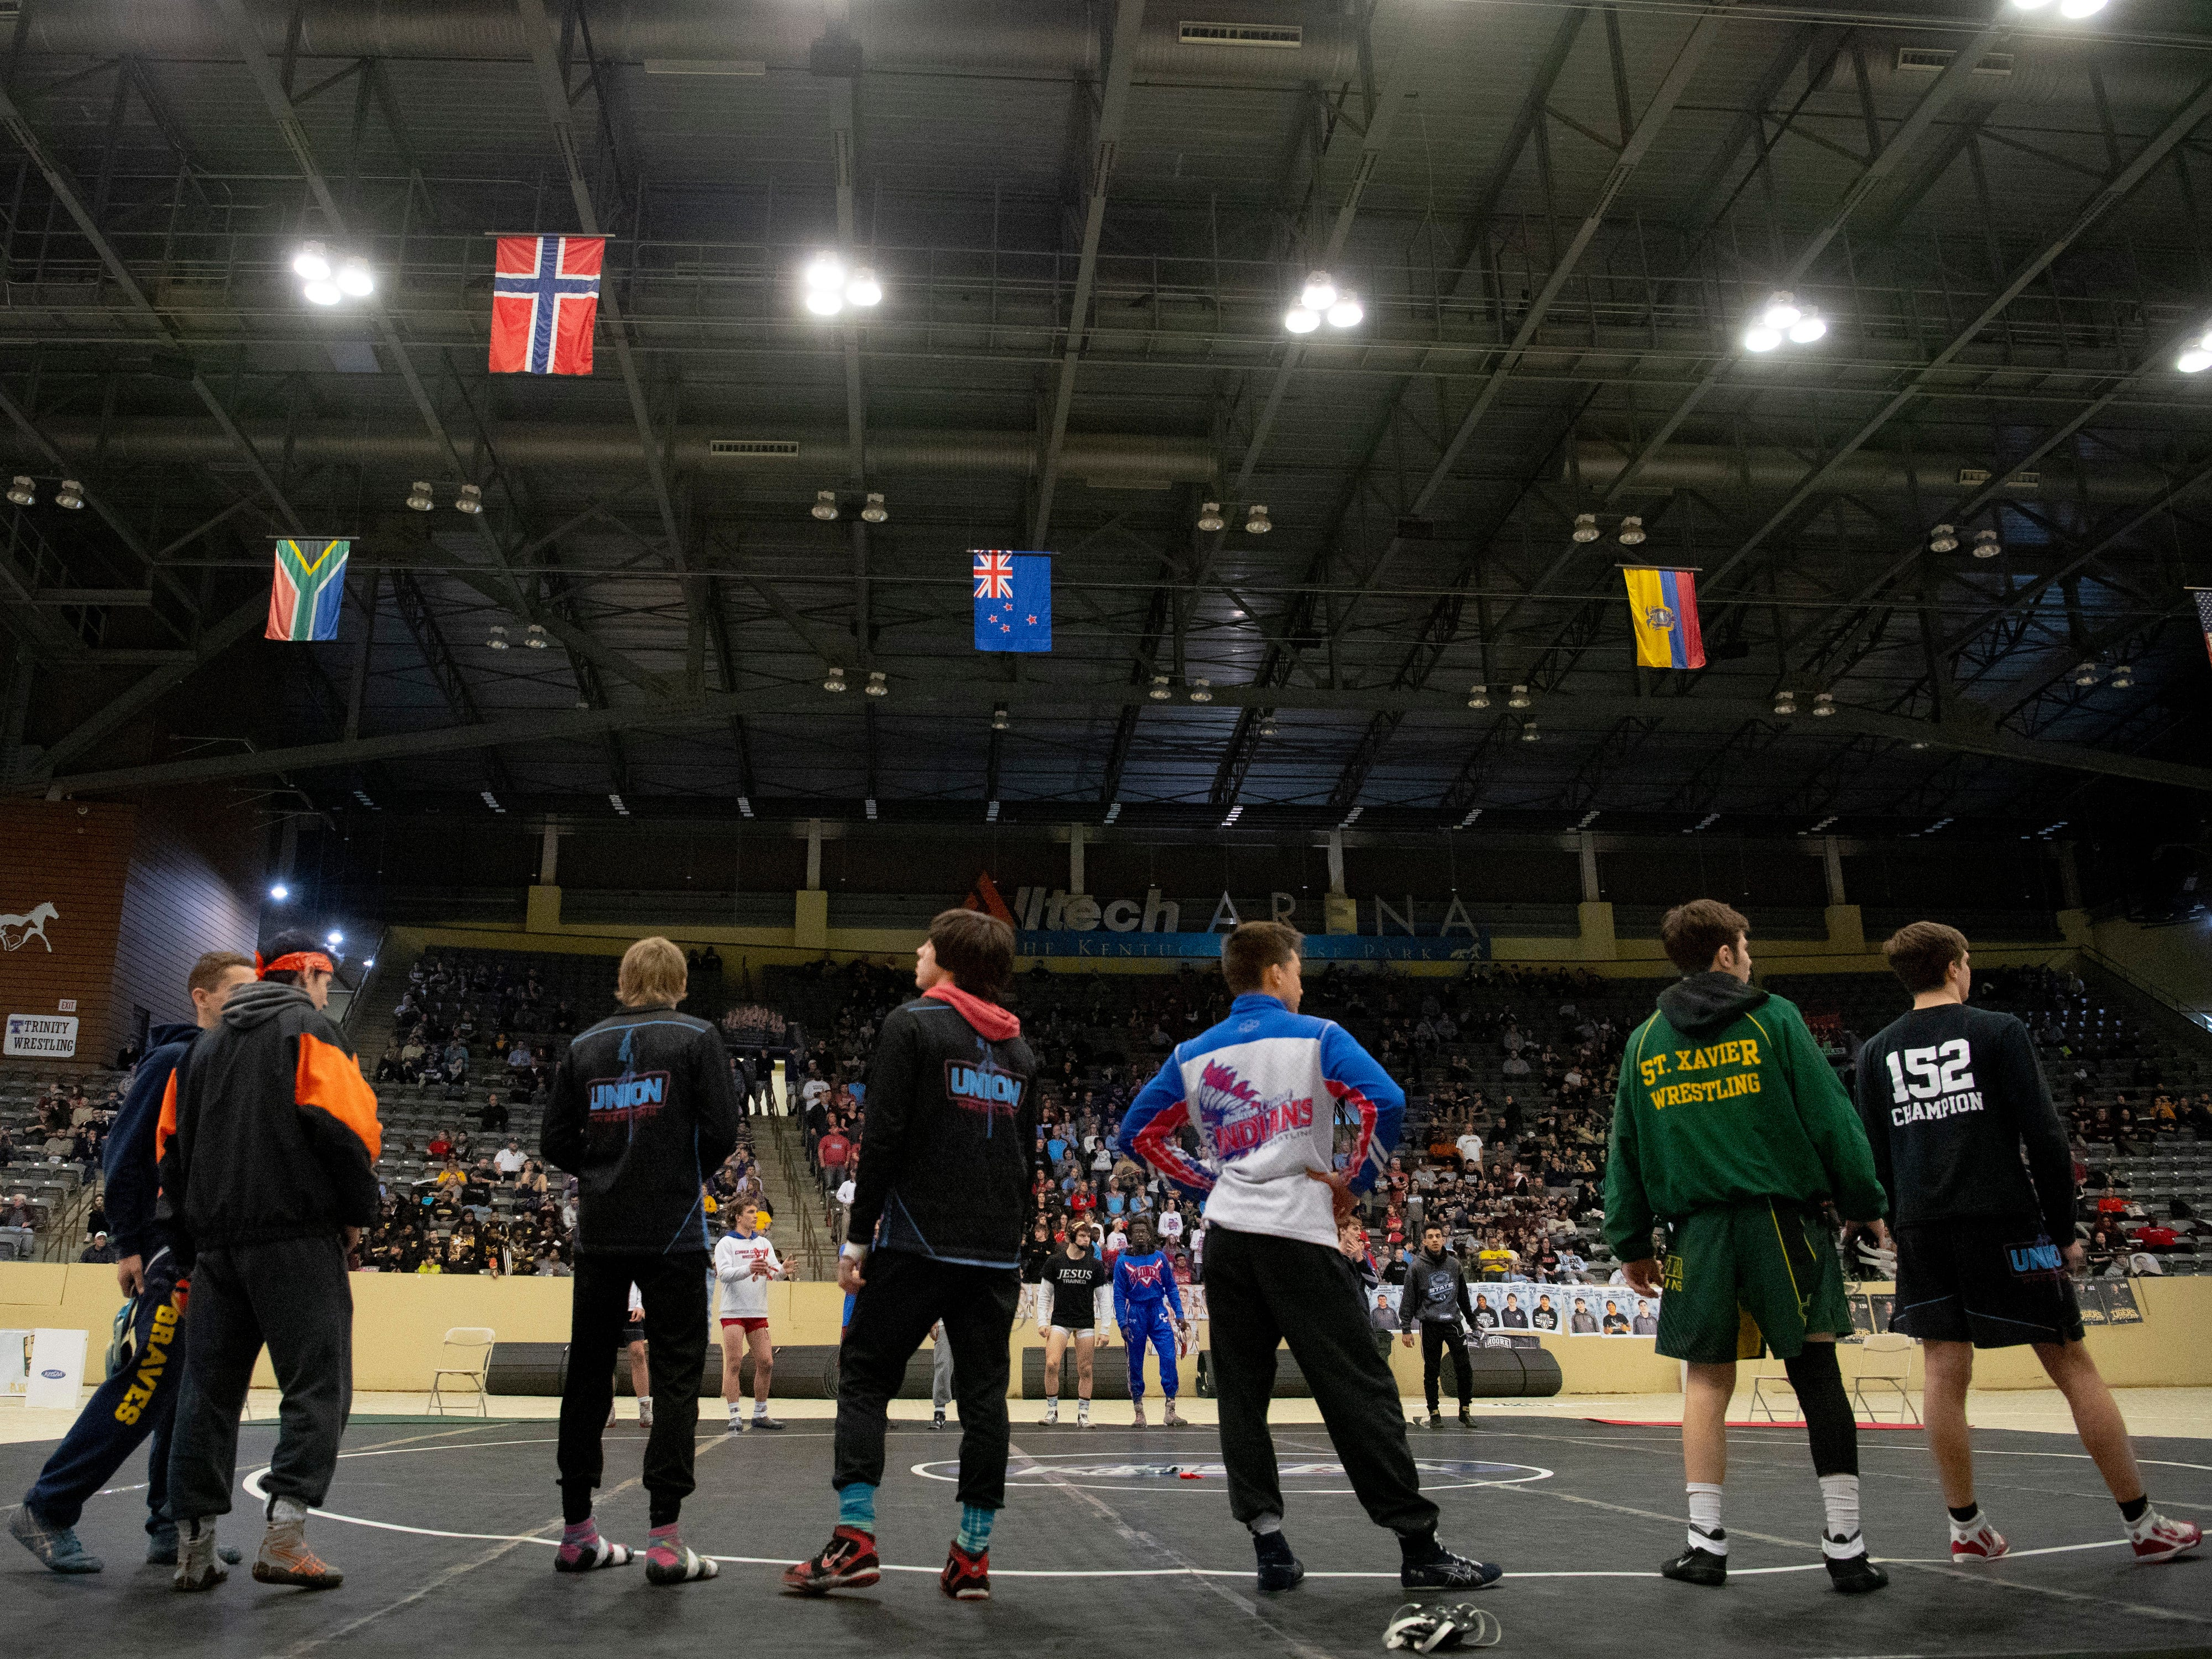 Wrestlers take to the mat for introductions at the KHSAA State Wrestling Championships at the Alltech Arena in Lexington, Ky., Saturday afternoon.